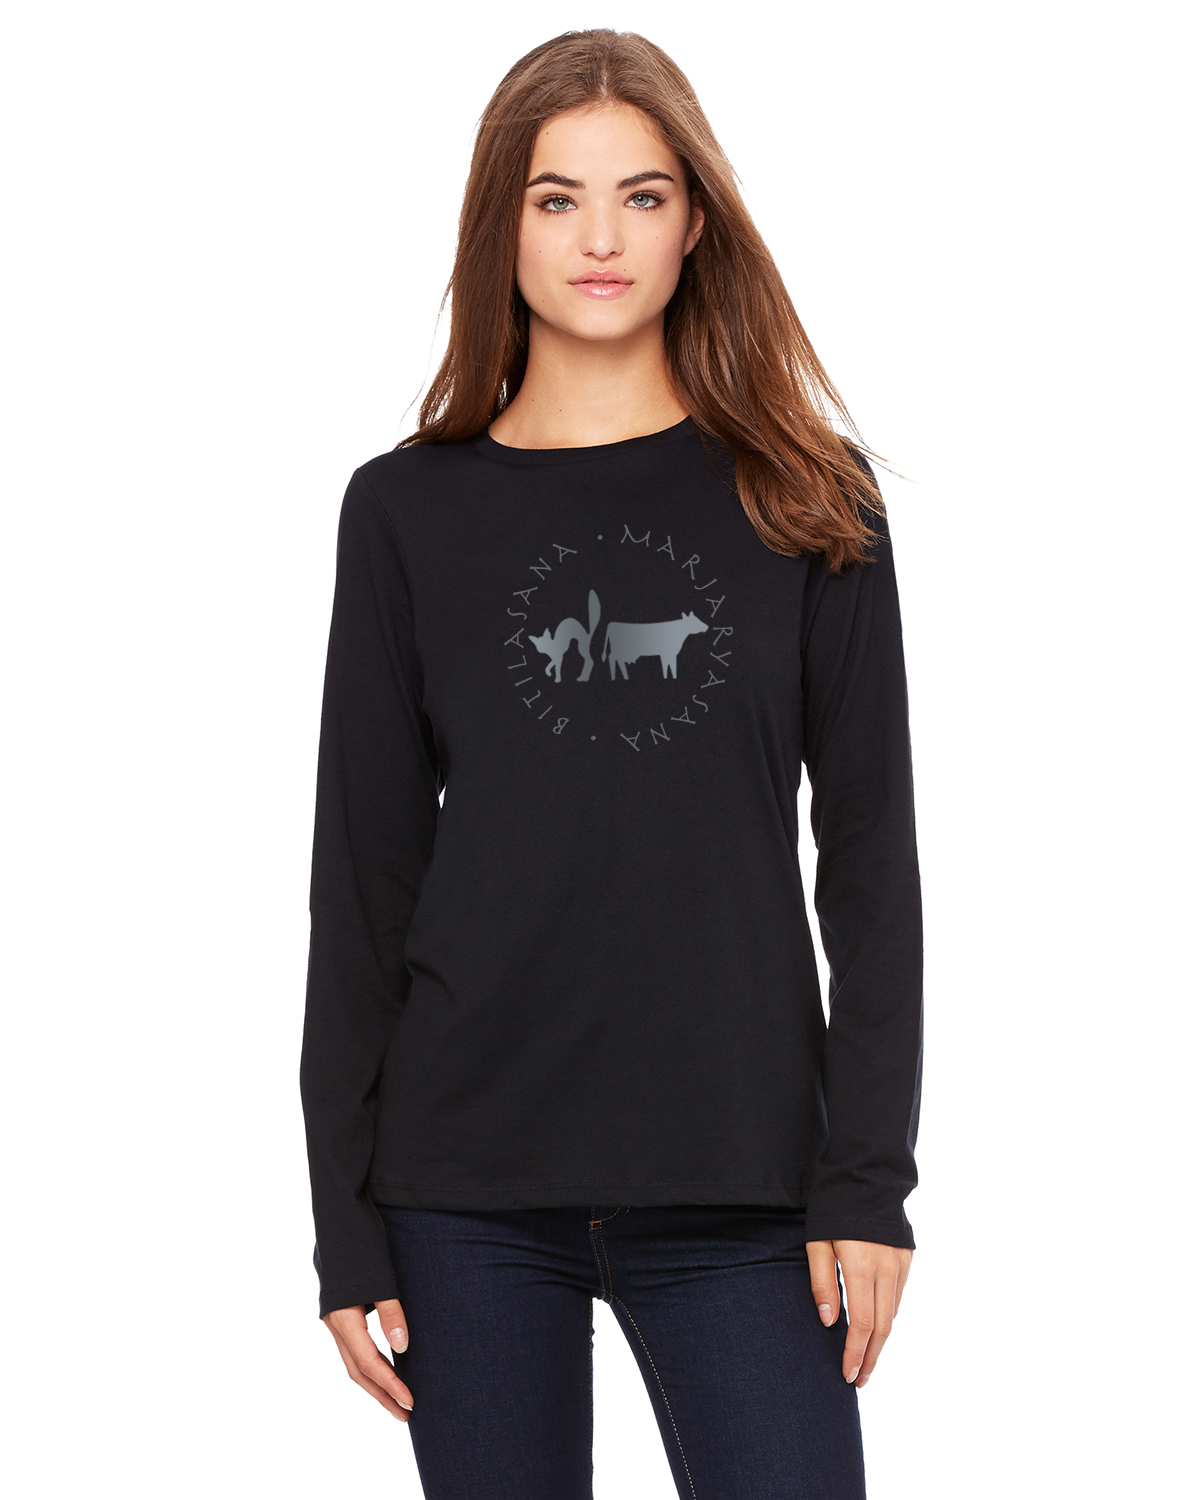 Women's long sleeve all cotton crew neck (black)